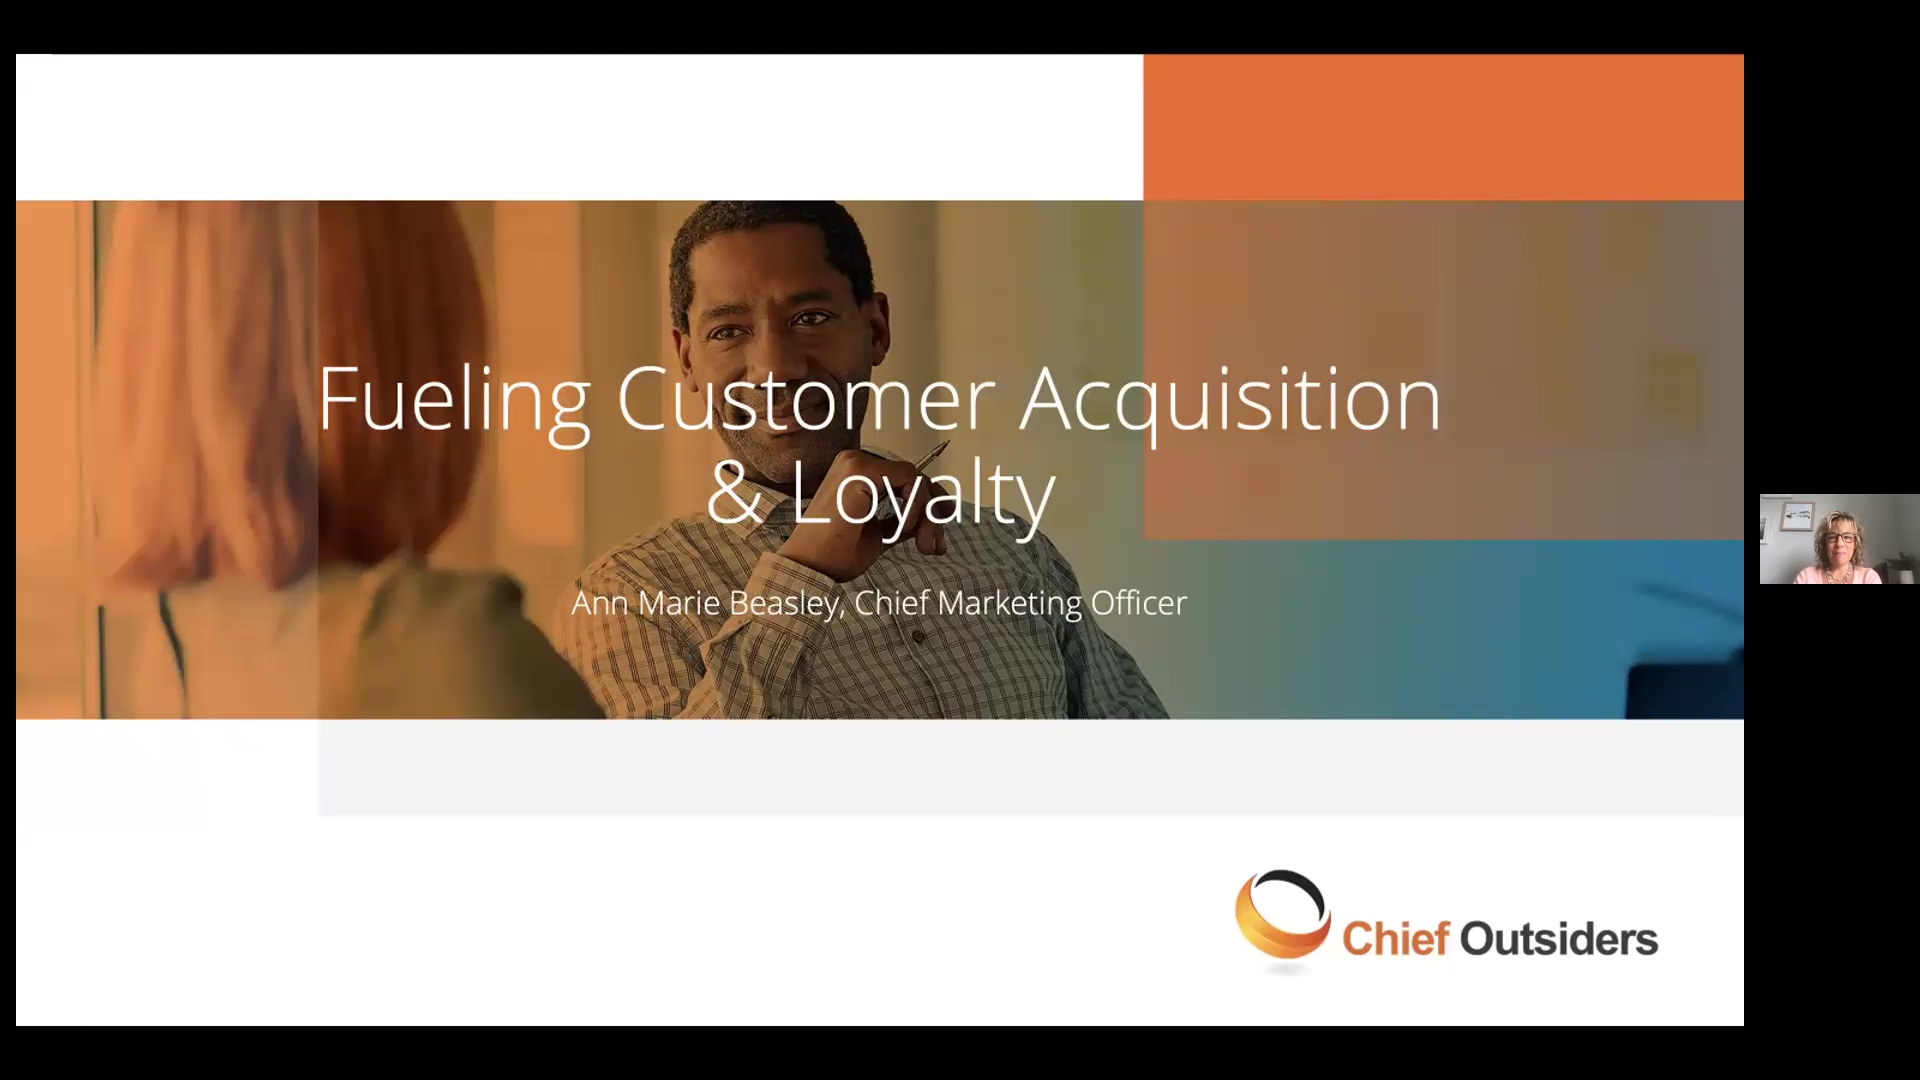 fueling-customer-acquisition-loyalty-webinar